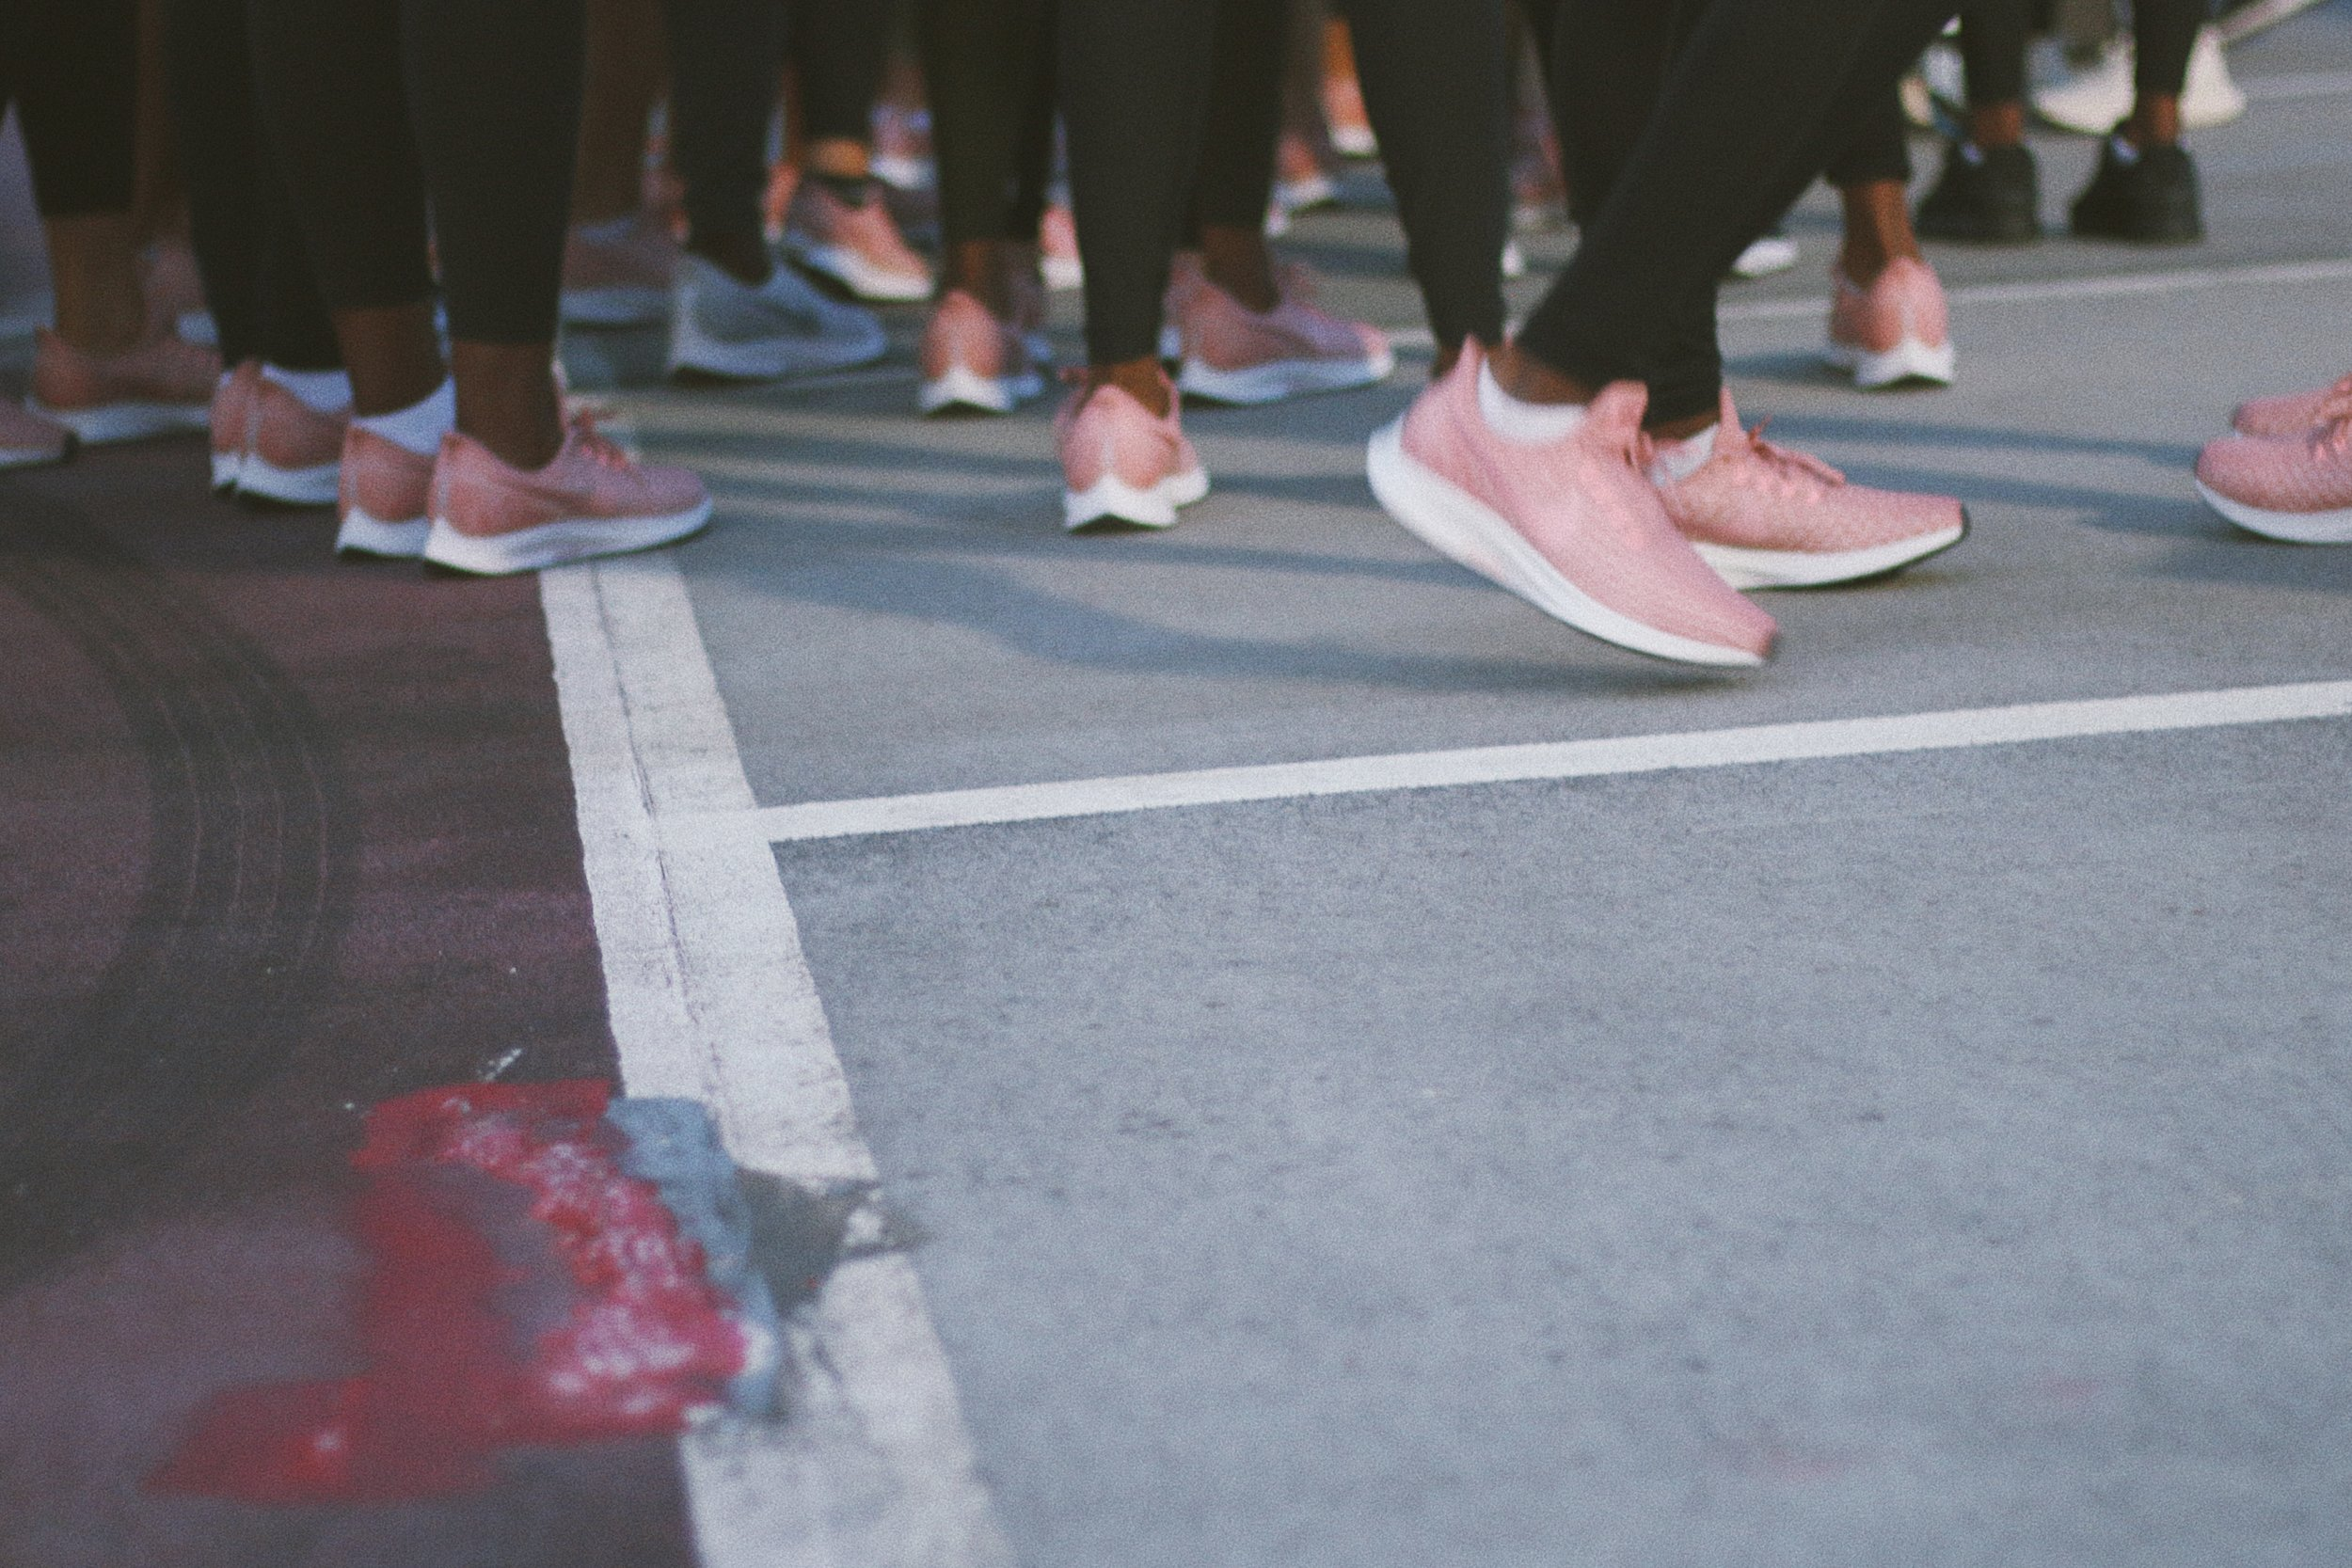 nike-we-fly-ldn-womens-sport-running-event-01.jpg